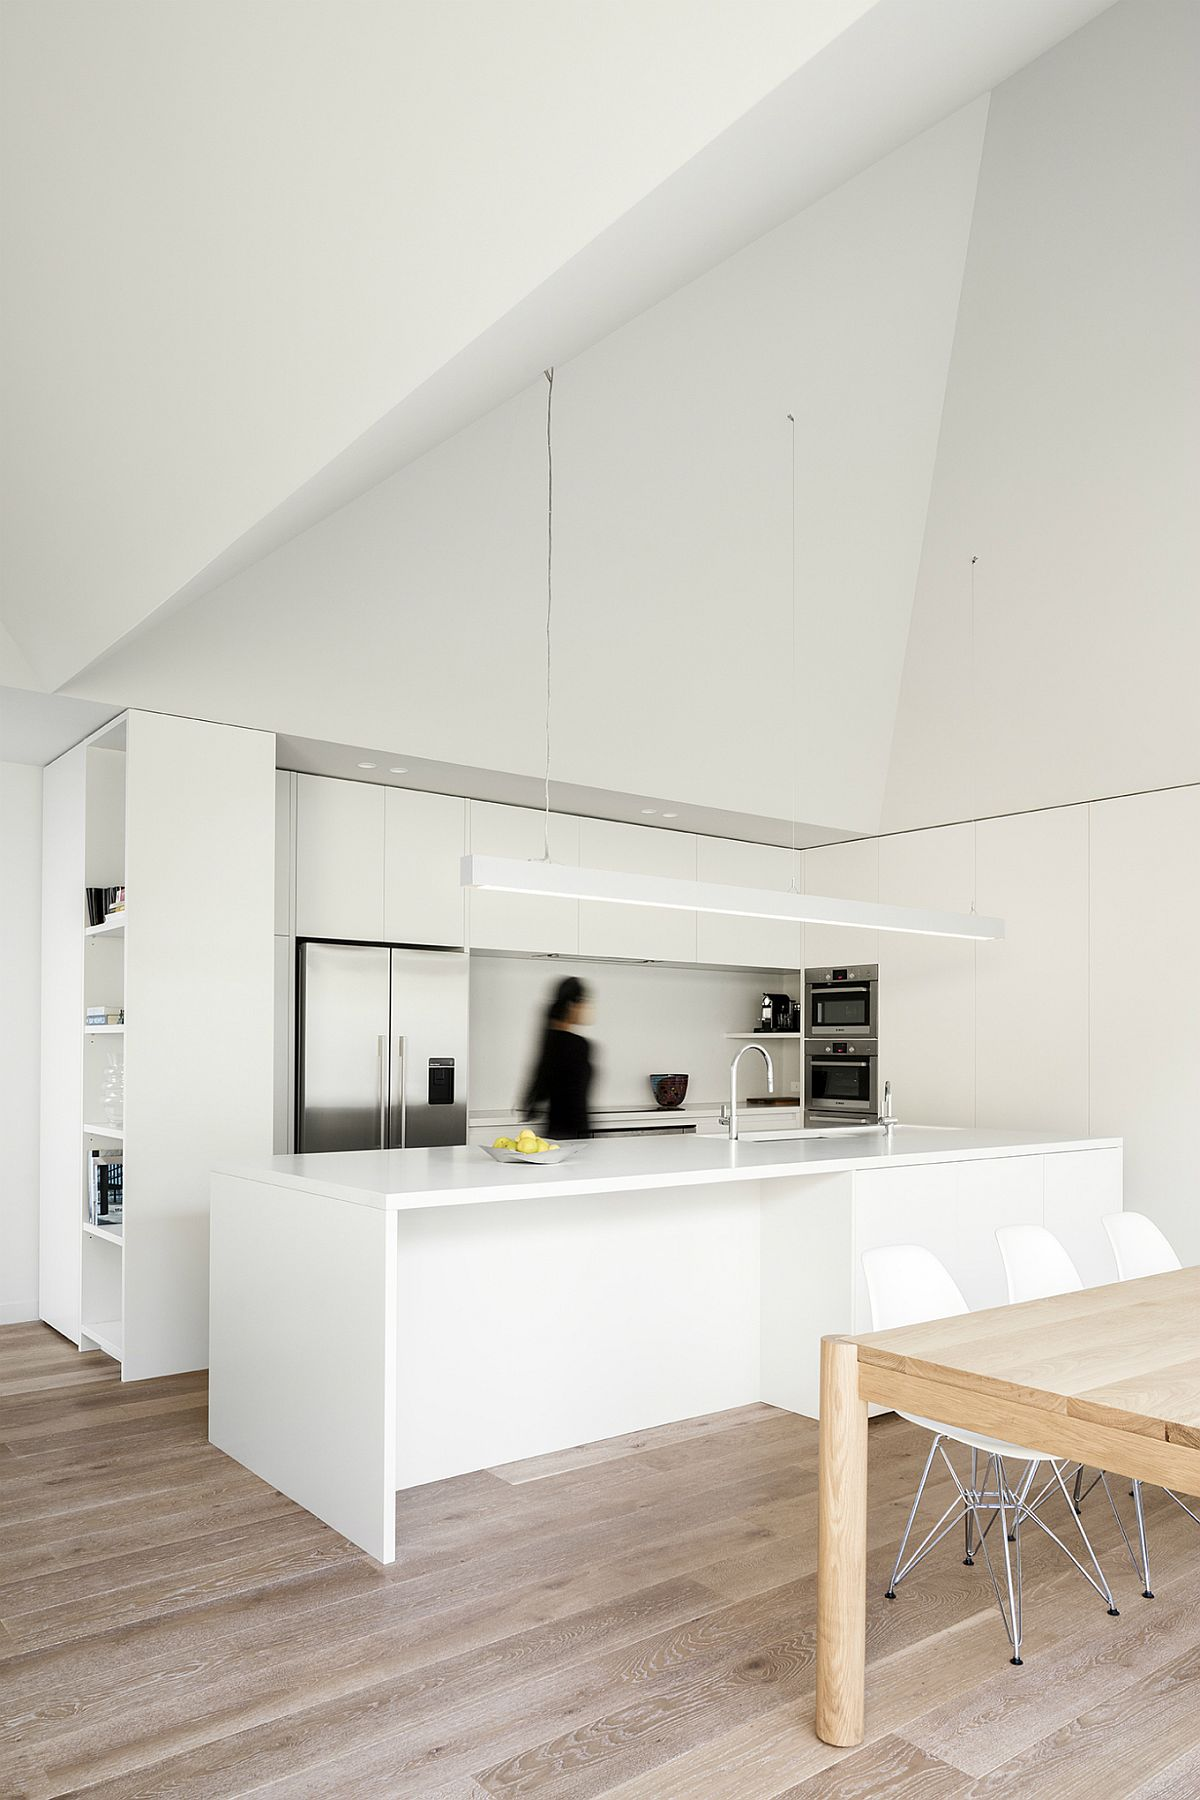 Gable-roof-gives-the-interior-a-more-spacious-look